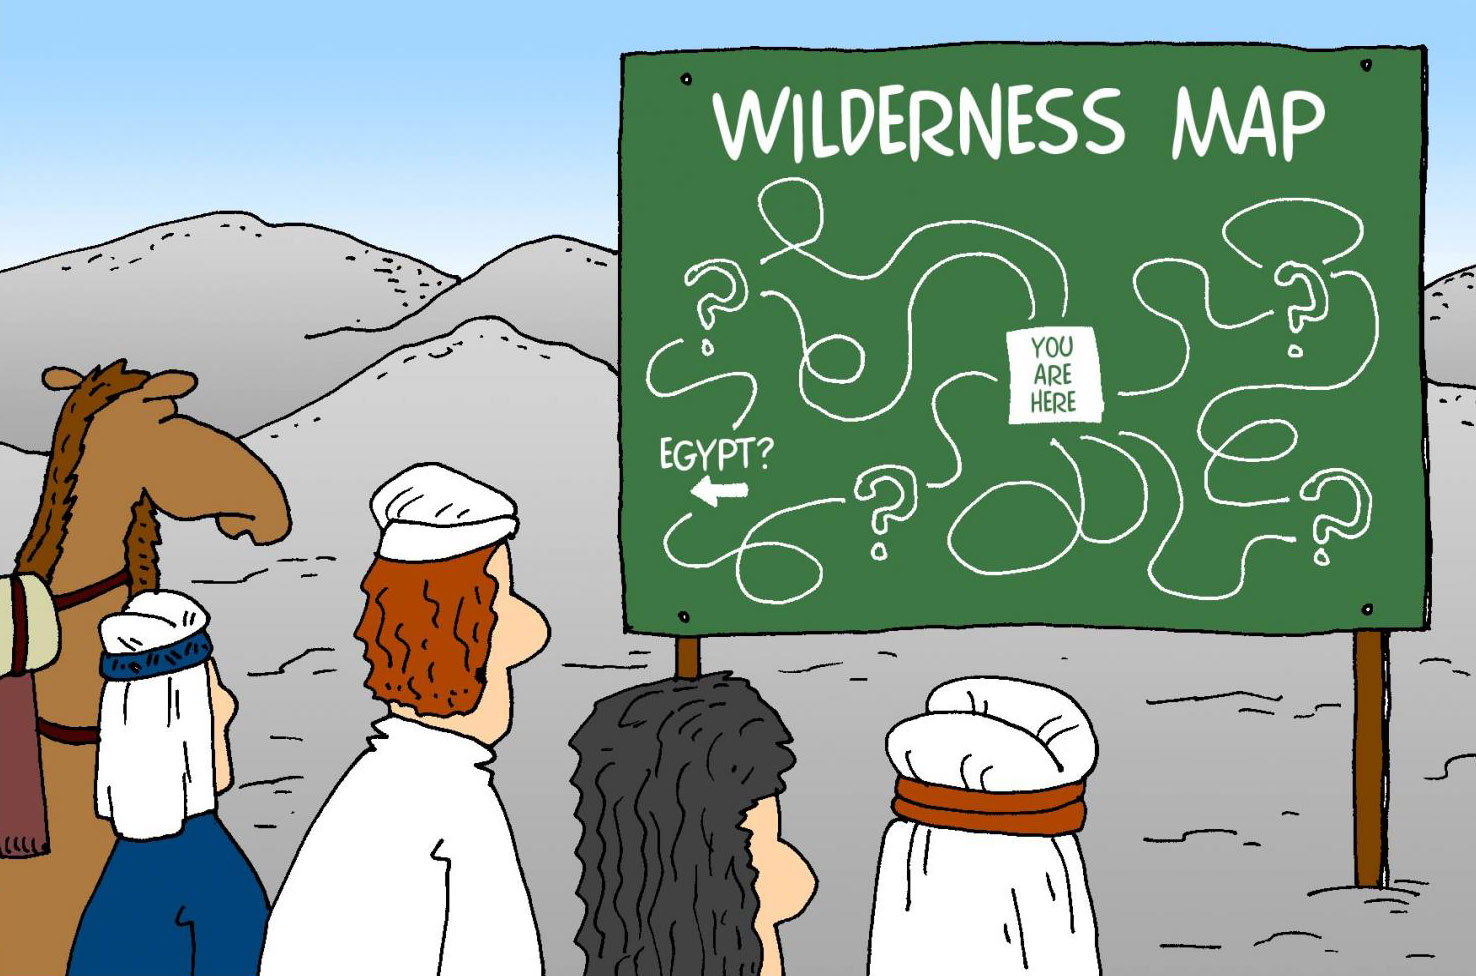 Israel's Wilderness Wanderings Humor